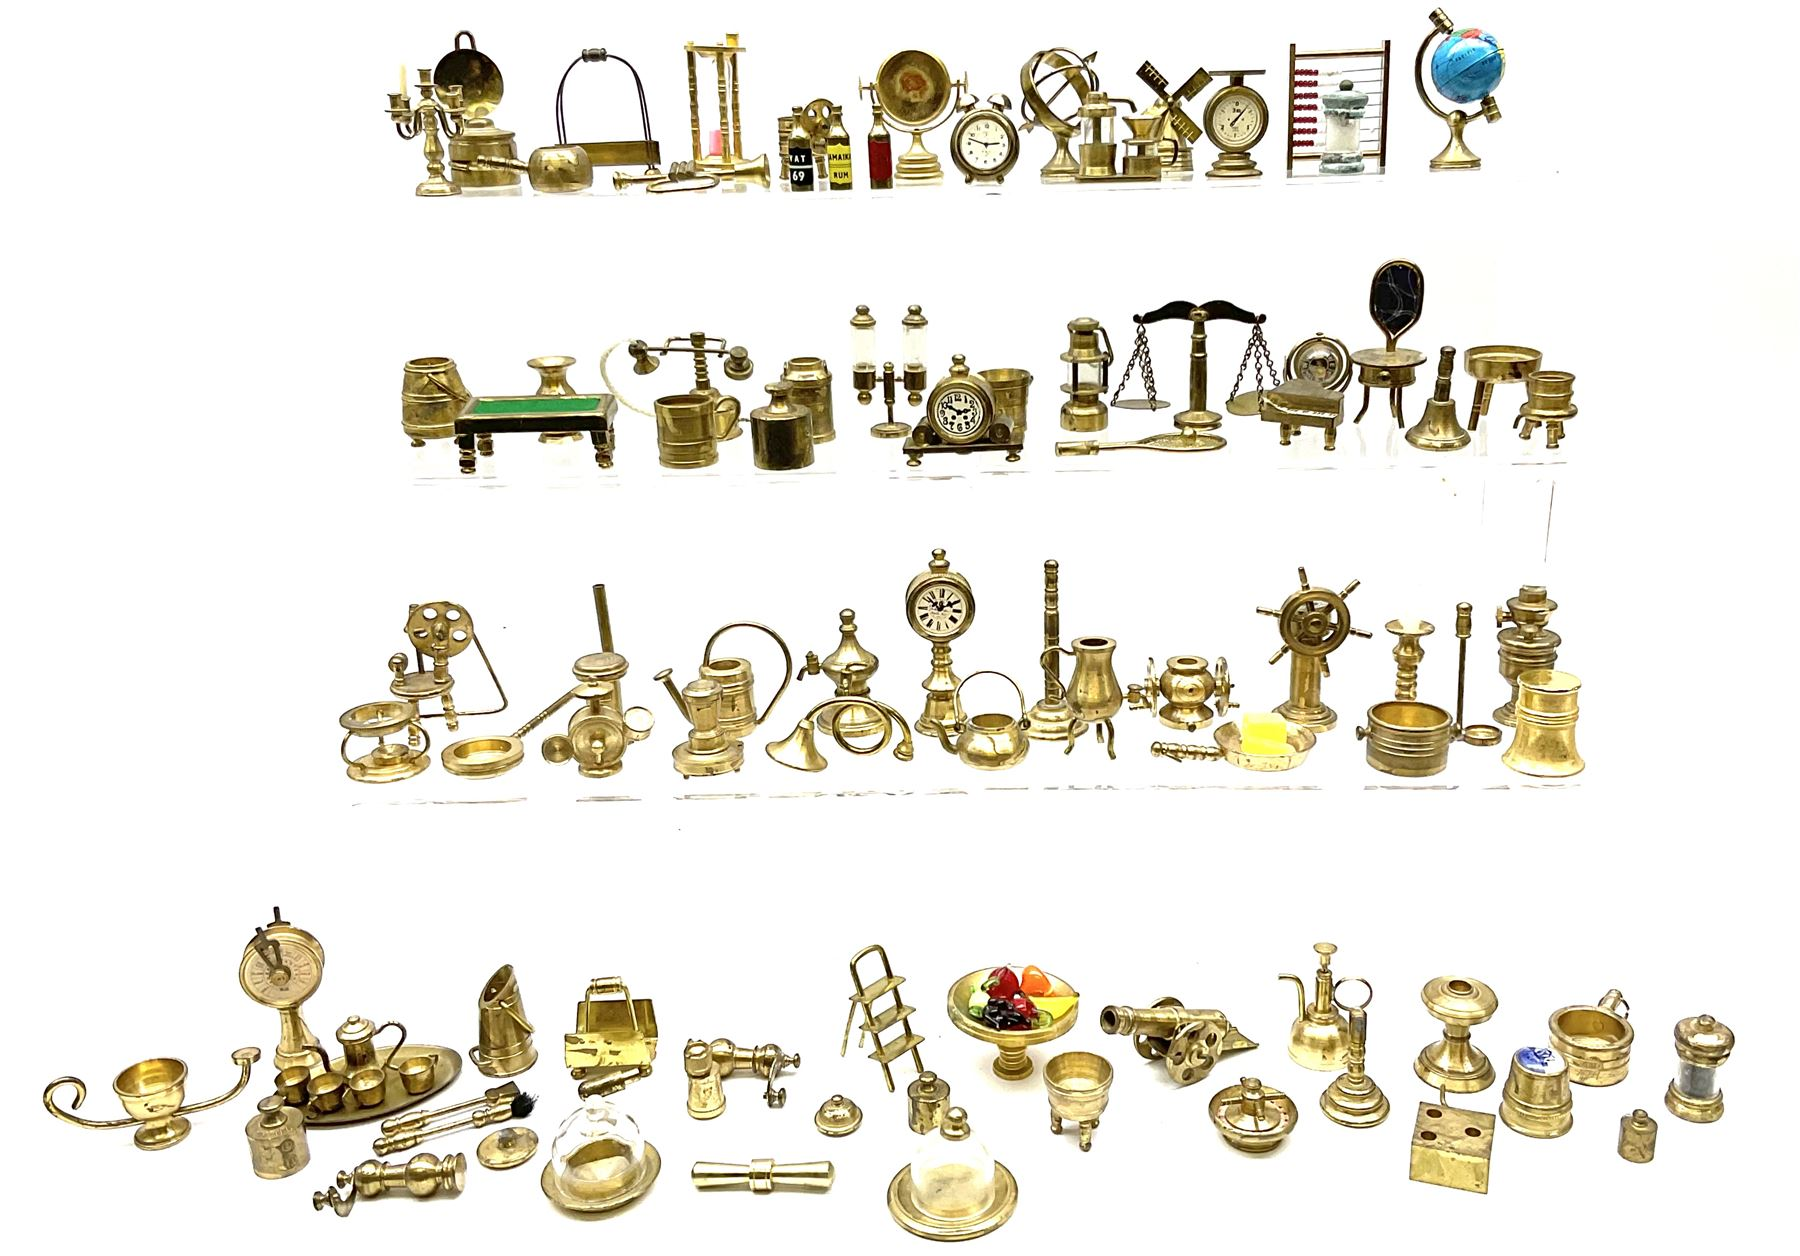 Over one-hundred various scale miniature brass ornaments suitable for decorating doll's houses inclu